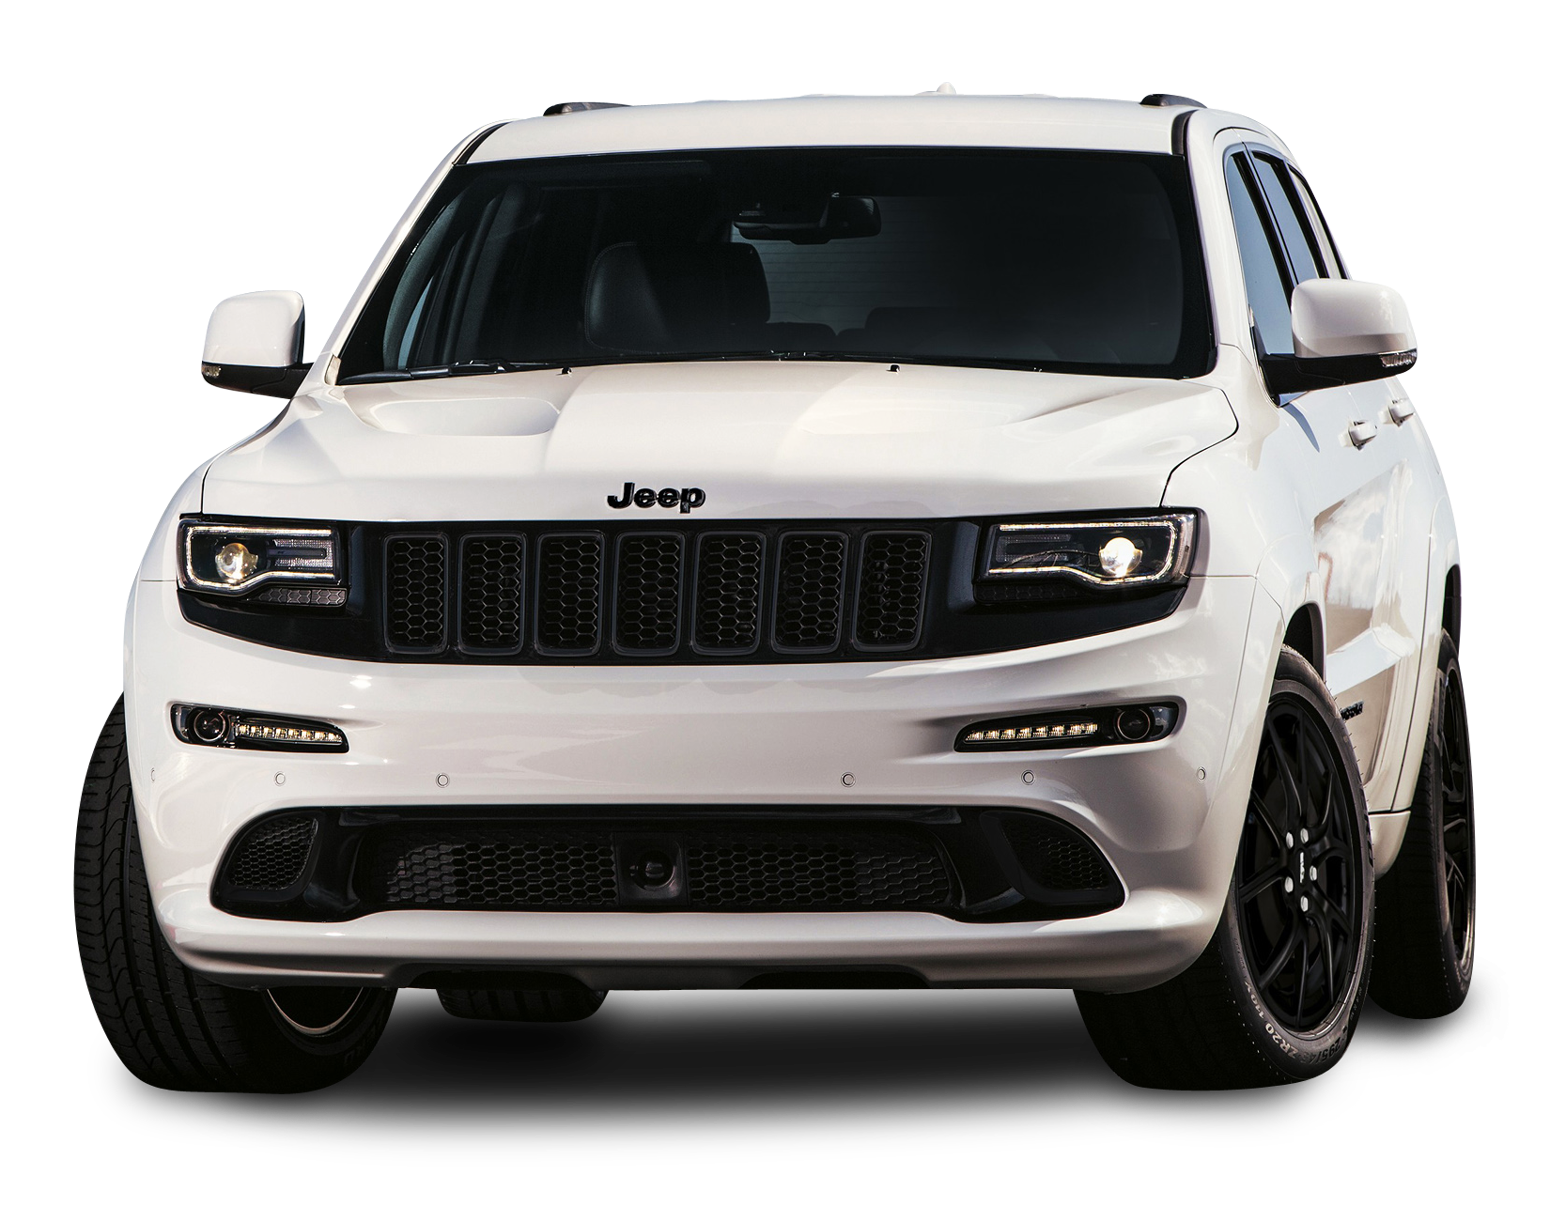 Jeep Car Images Hd: PNG HD Images Of Cars Transparent HD Images Of Cars.PNG